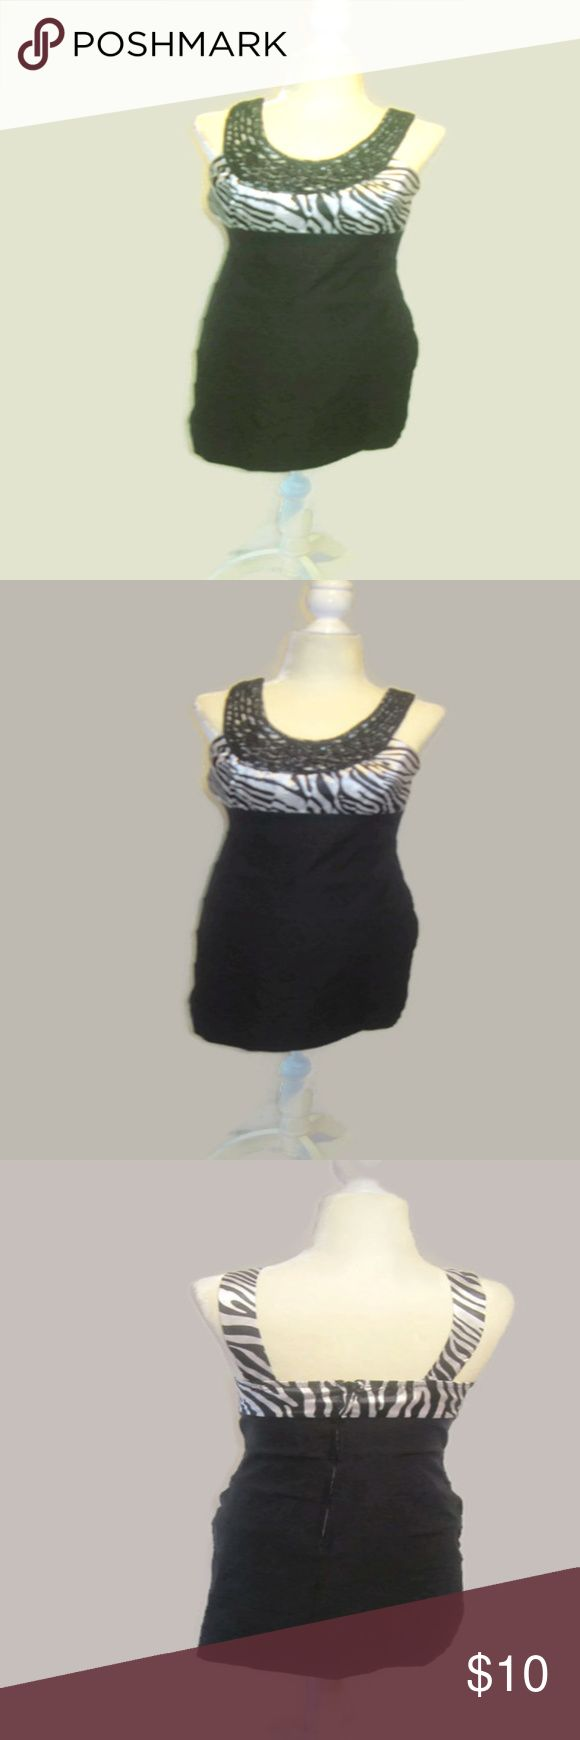 """Trixxi Zebra Print Beaded Cocktail Dress Trixxi Cocktail Dress Women's JR Size 5 Black and White Slim Fit Silhouette  High Quality Spandex Blend Bottom that Stretches and Fits to your Shape with Shutter Pleats   Built in Bra  Above Knee Mini  Animal Print White Satiny Top with Bead Embellishments  Halter Back   Half Zip Up  Slim Fitting Sexy Dress!!   Junior Size 5 Approximate  Sizing Bust 34-36"""" Waist 26-28"""" Hips 35-37""""   Sexy Dress!!  Smoke Free Environment Trixxi Dresses"""